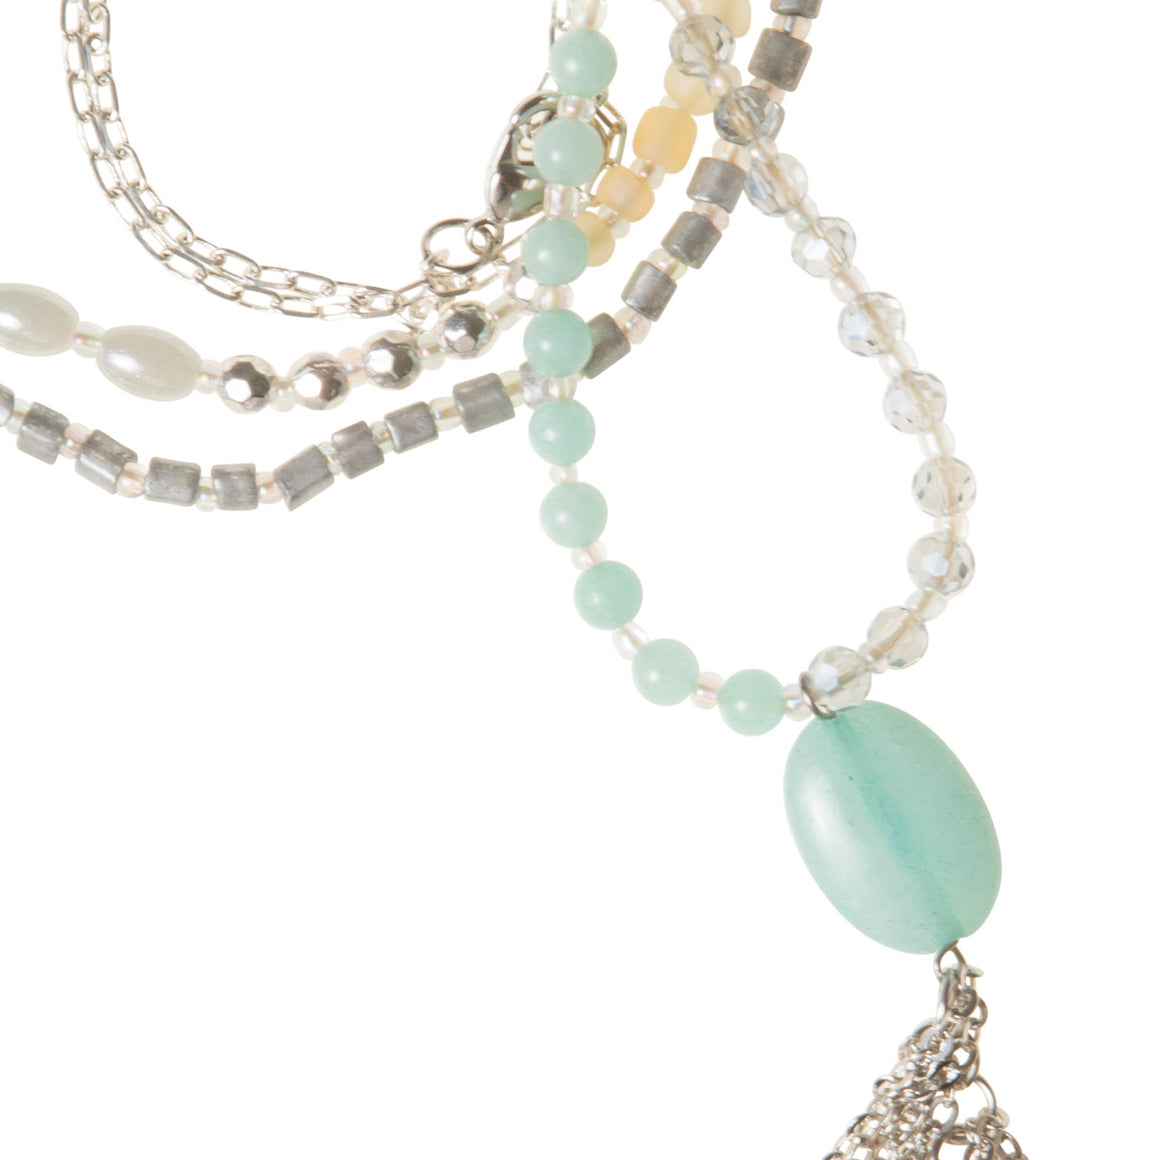 Daily Mala Necklace : seafoam/silver